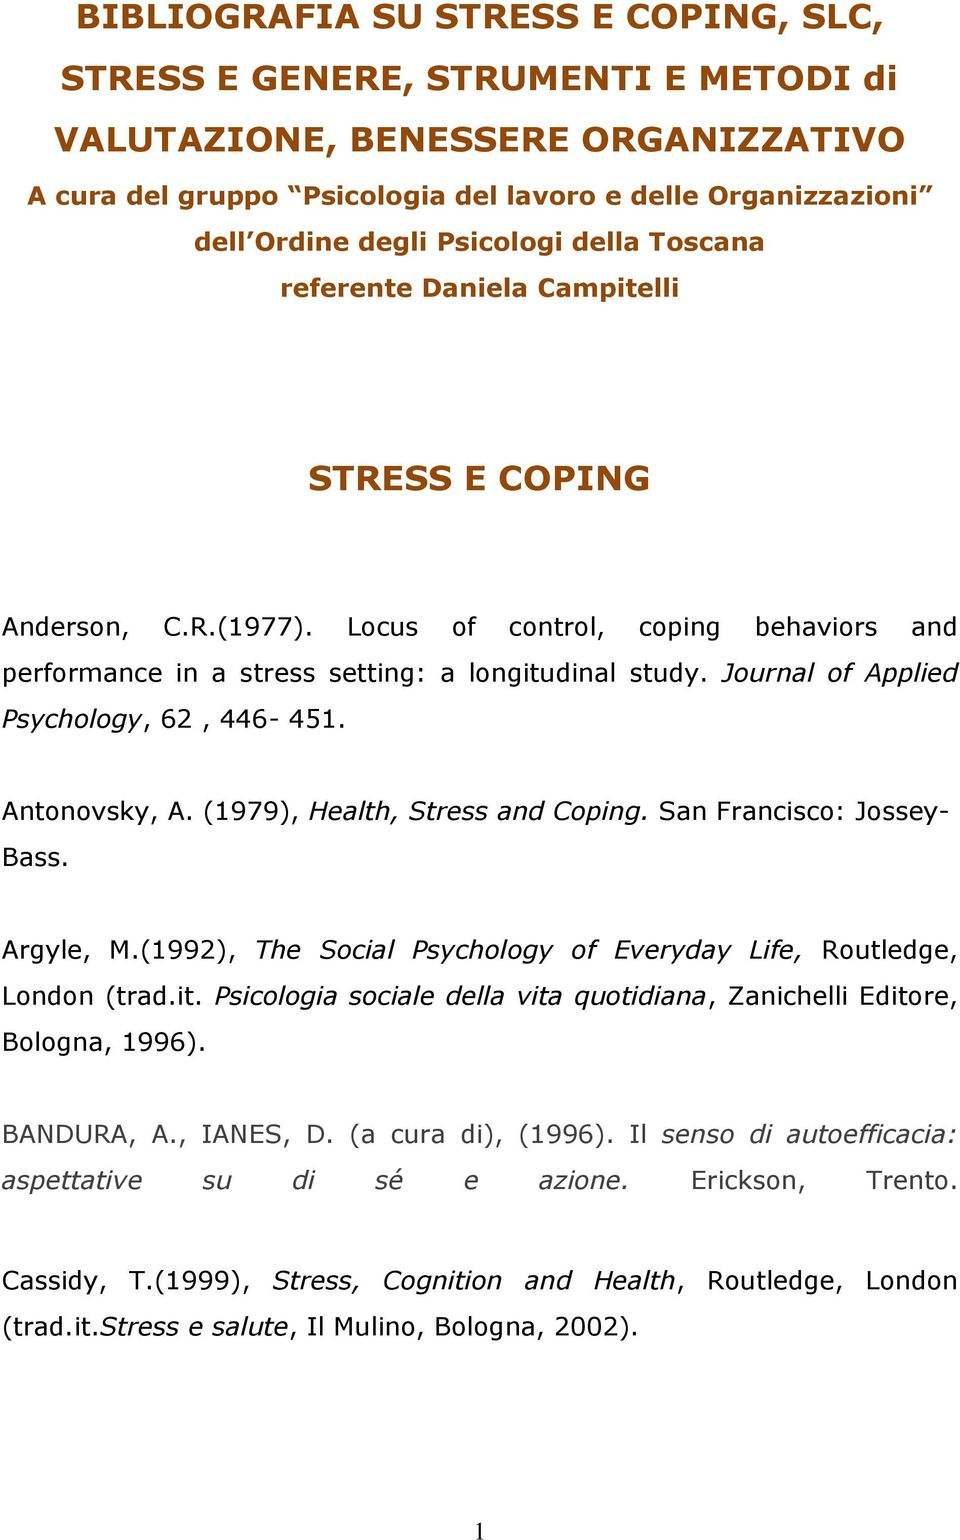 Journal of Applied Psychology, 62, 446-451. Antonovsky, A. (1979), Health, Stress and Coping. San Francisco: Jossey- Bass. Argyle, M.